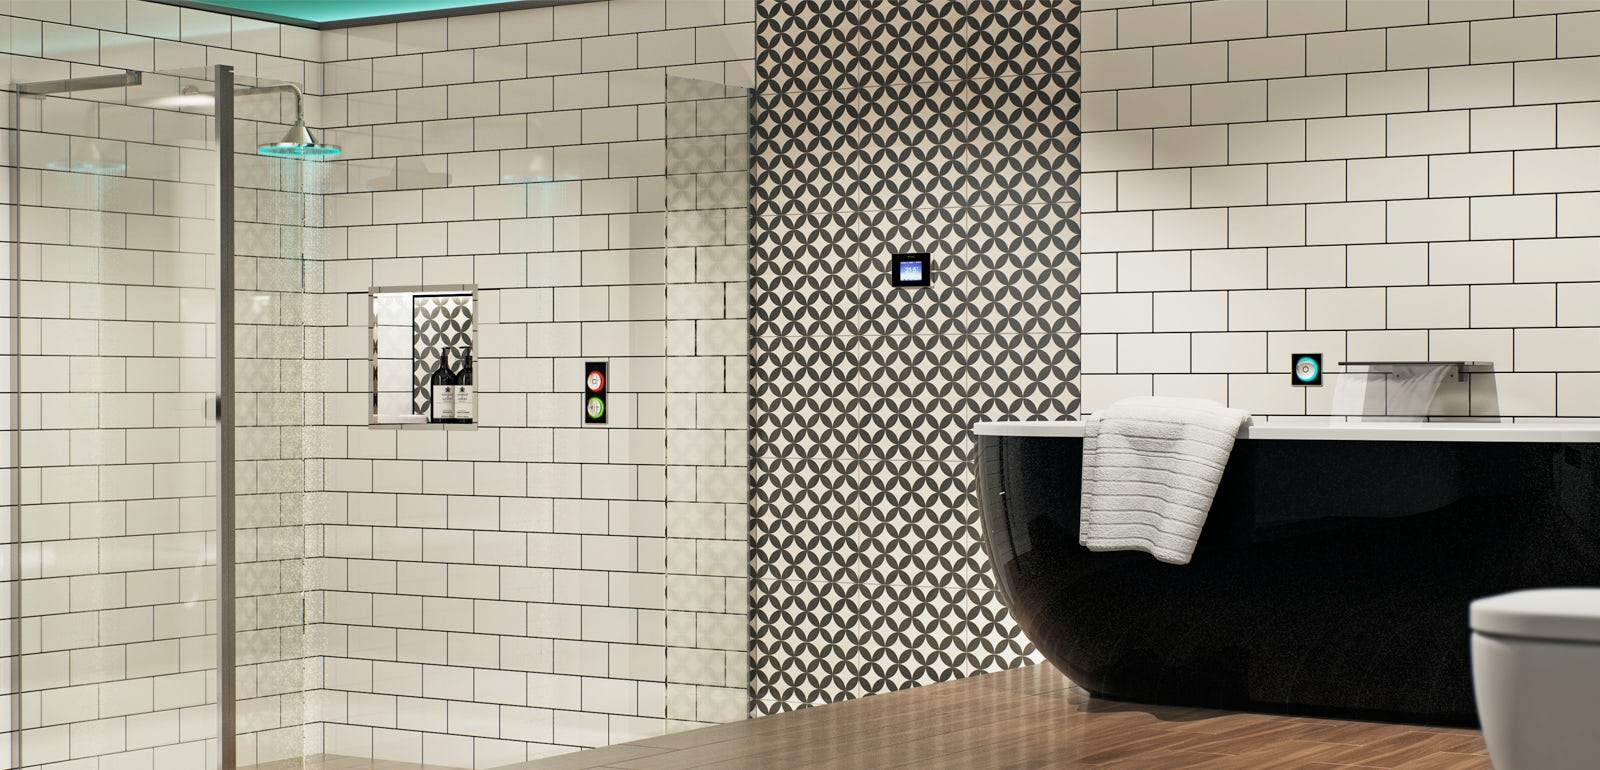 SmarTap: The bathroom of the future is here